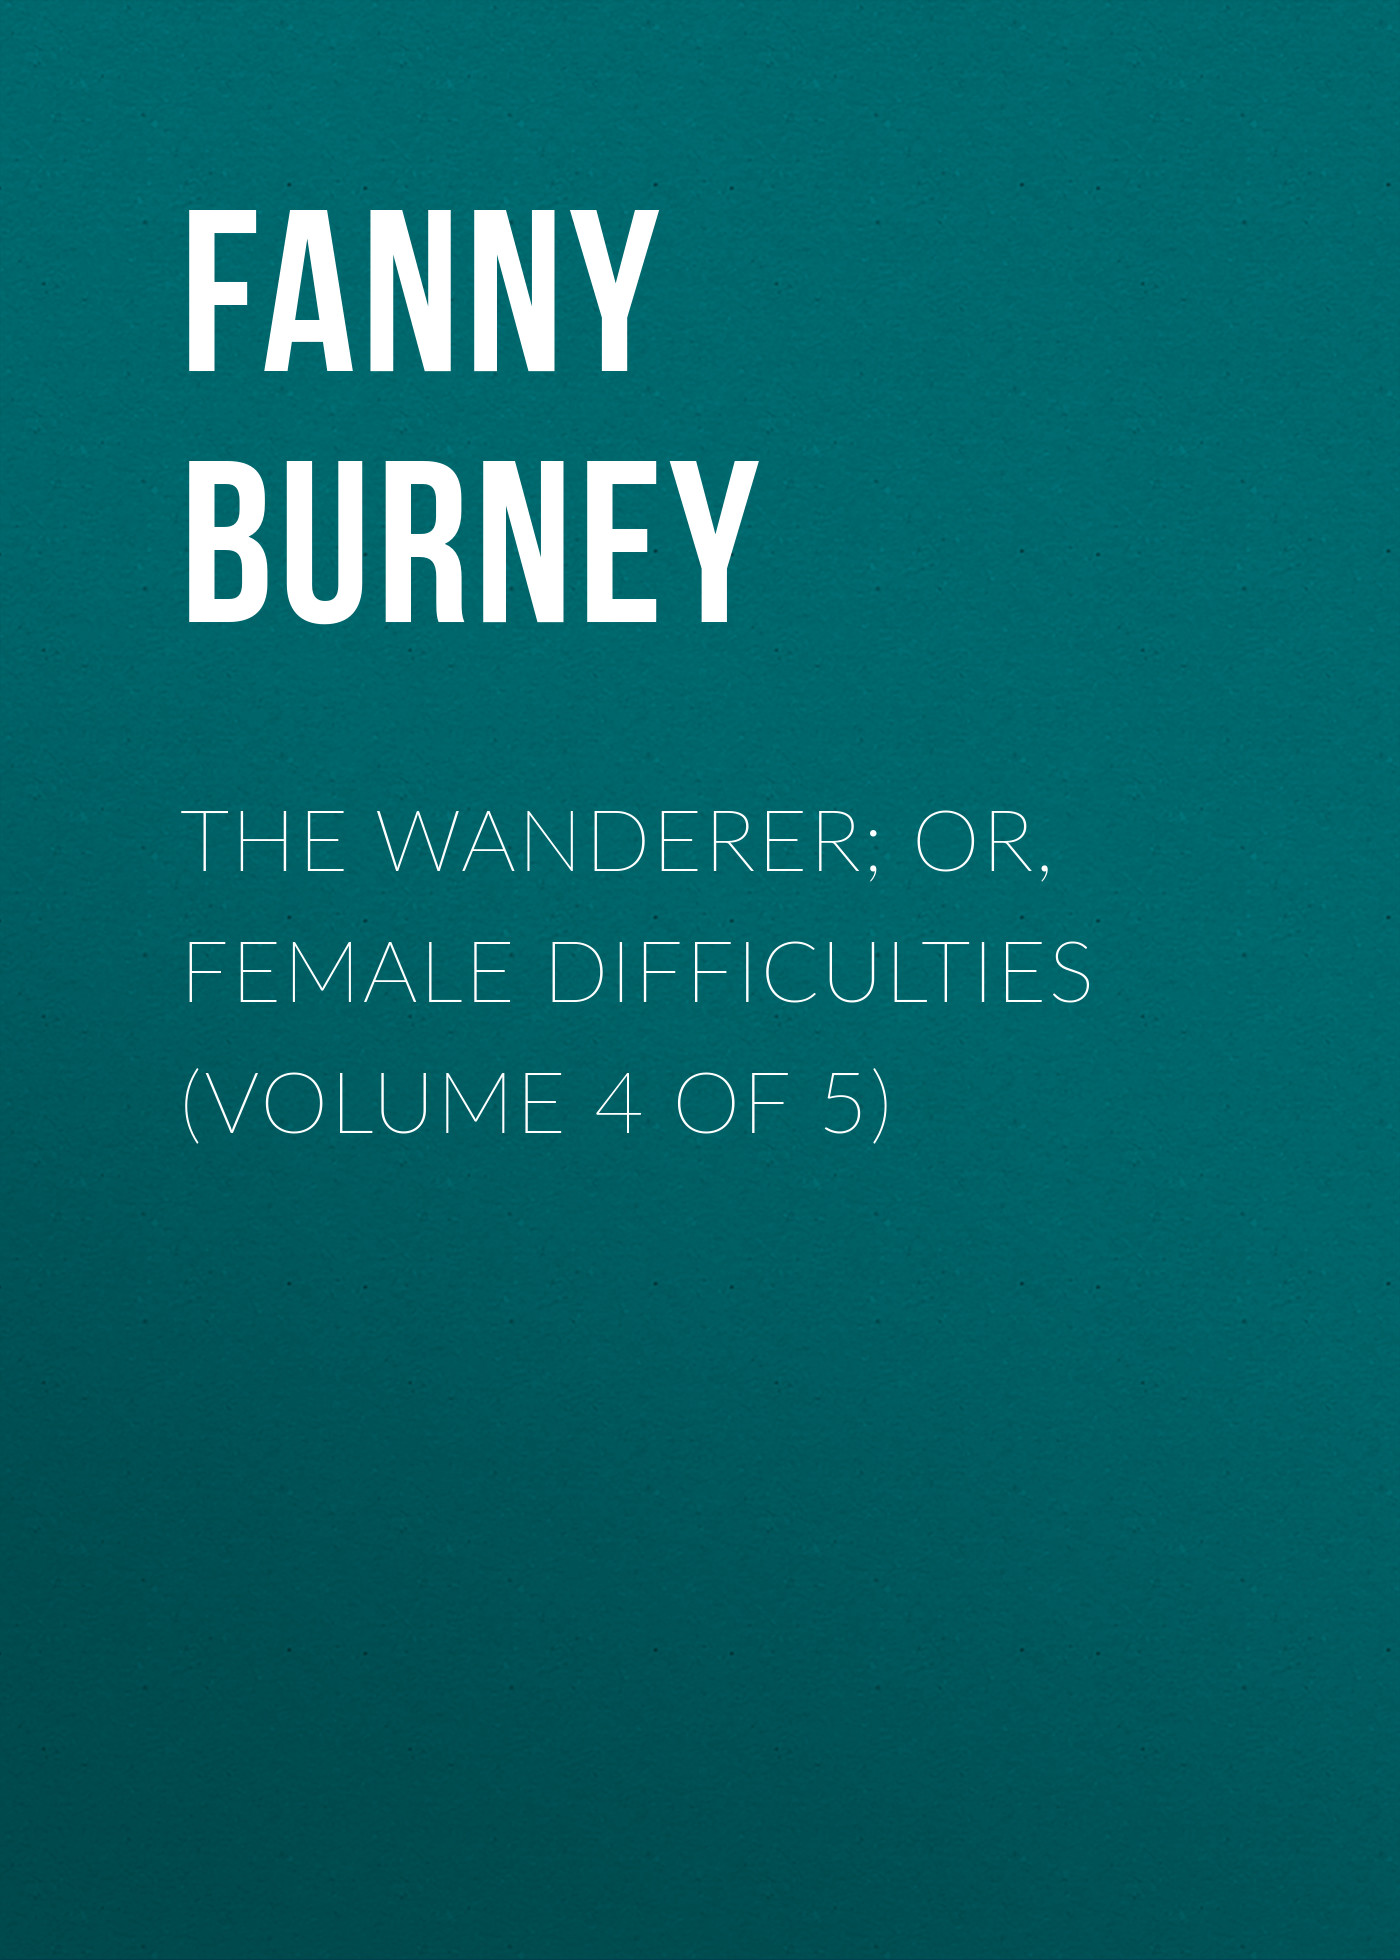 Burney Fanny The Wanderer; or, Female Difficulties (Volume 4 of 5) burney fanny the wanderer or female difficulties volume 5 of 5